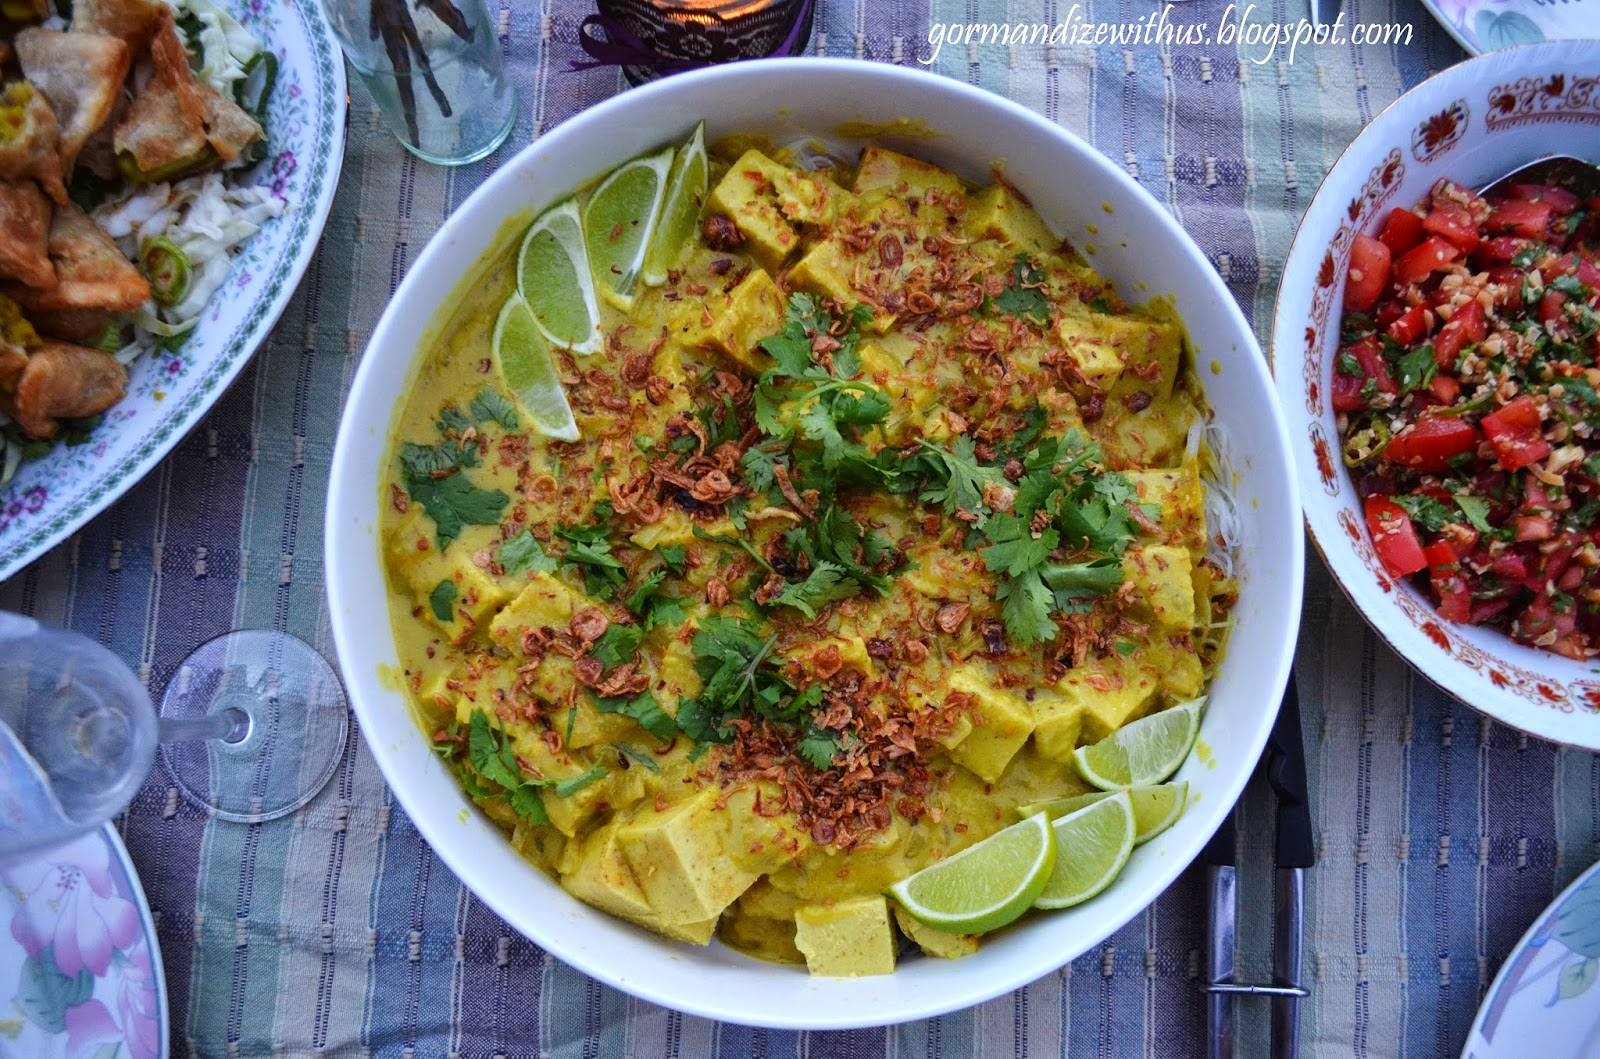 Gormandize vegan ohn no khao swe burmese noodles with chickpea tofu the first dish im sharing for burmese food month is ohn no khao swe one of the countries most common and popular dishes its traditionally made with forumfinder